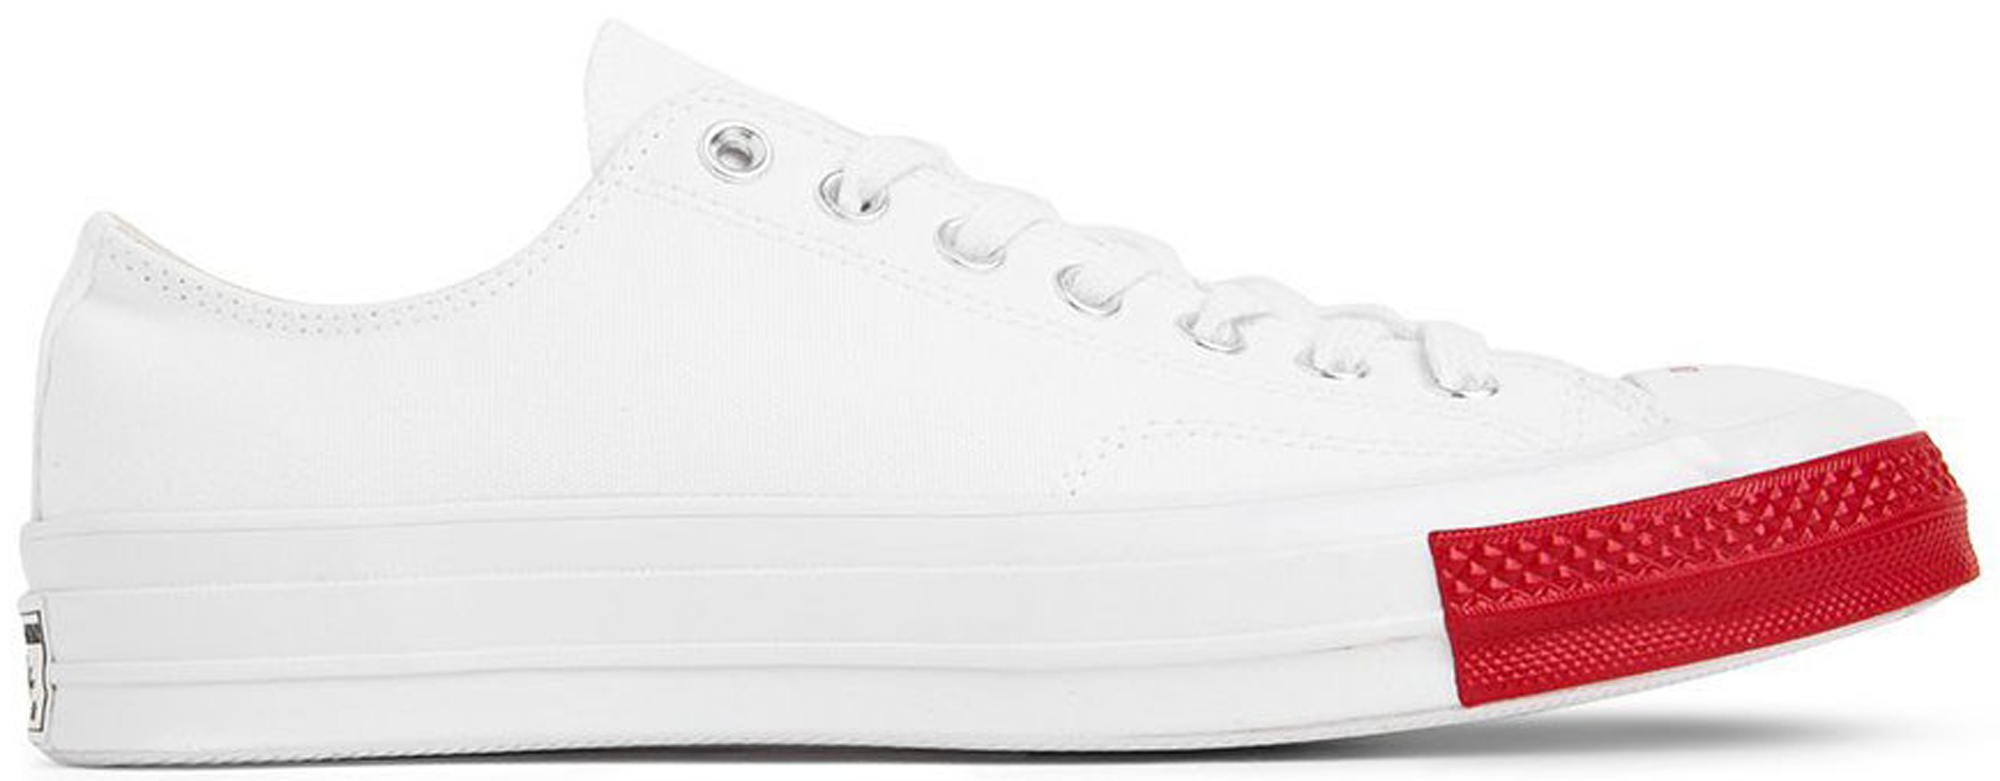 Converse Chuck Taylor All-Star 70s Ox Undercover White